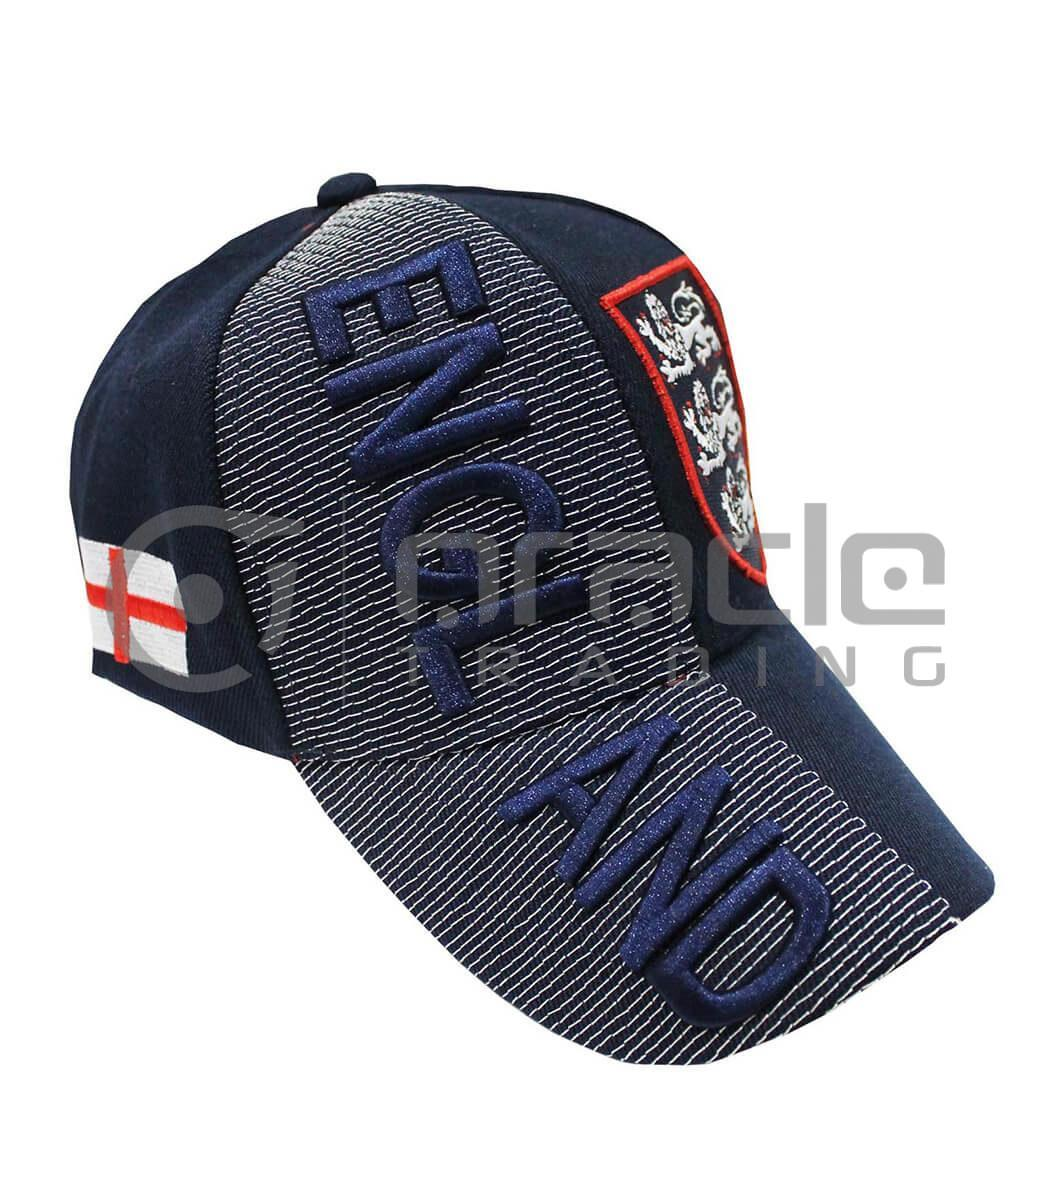 3D England Hat - Navy